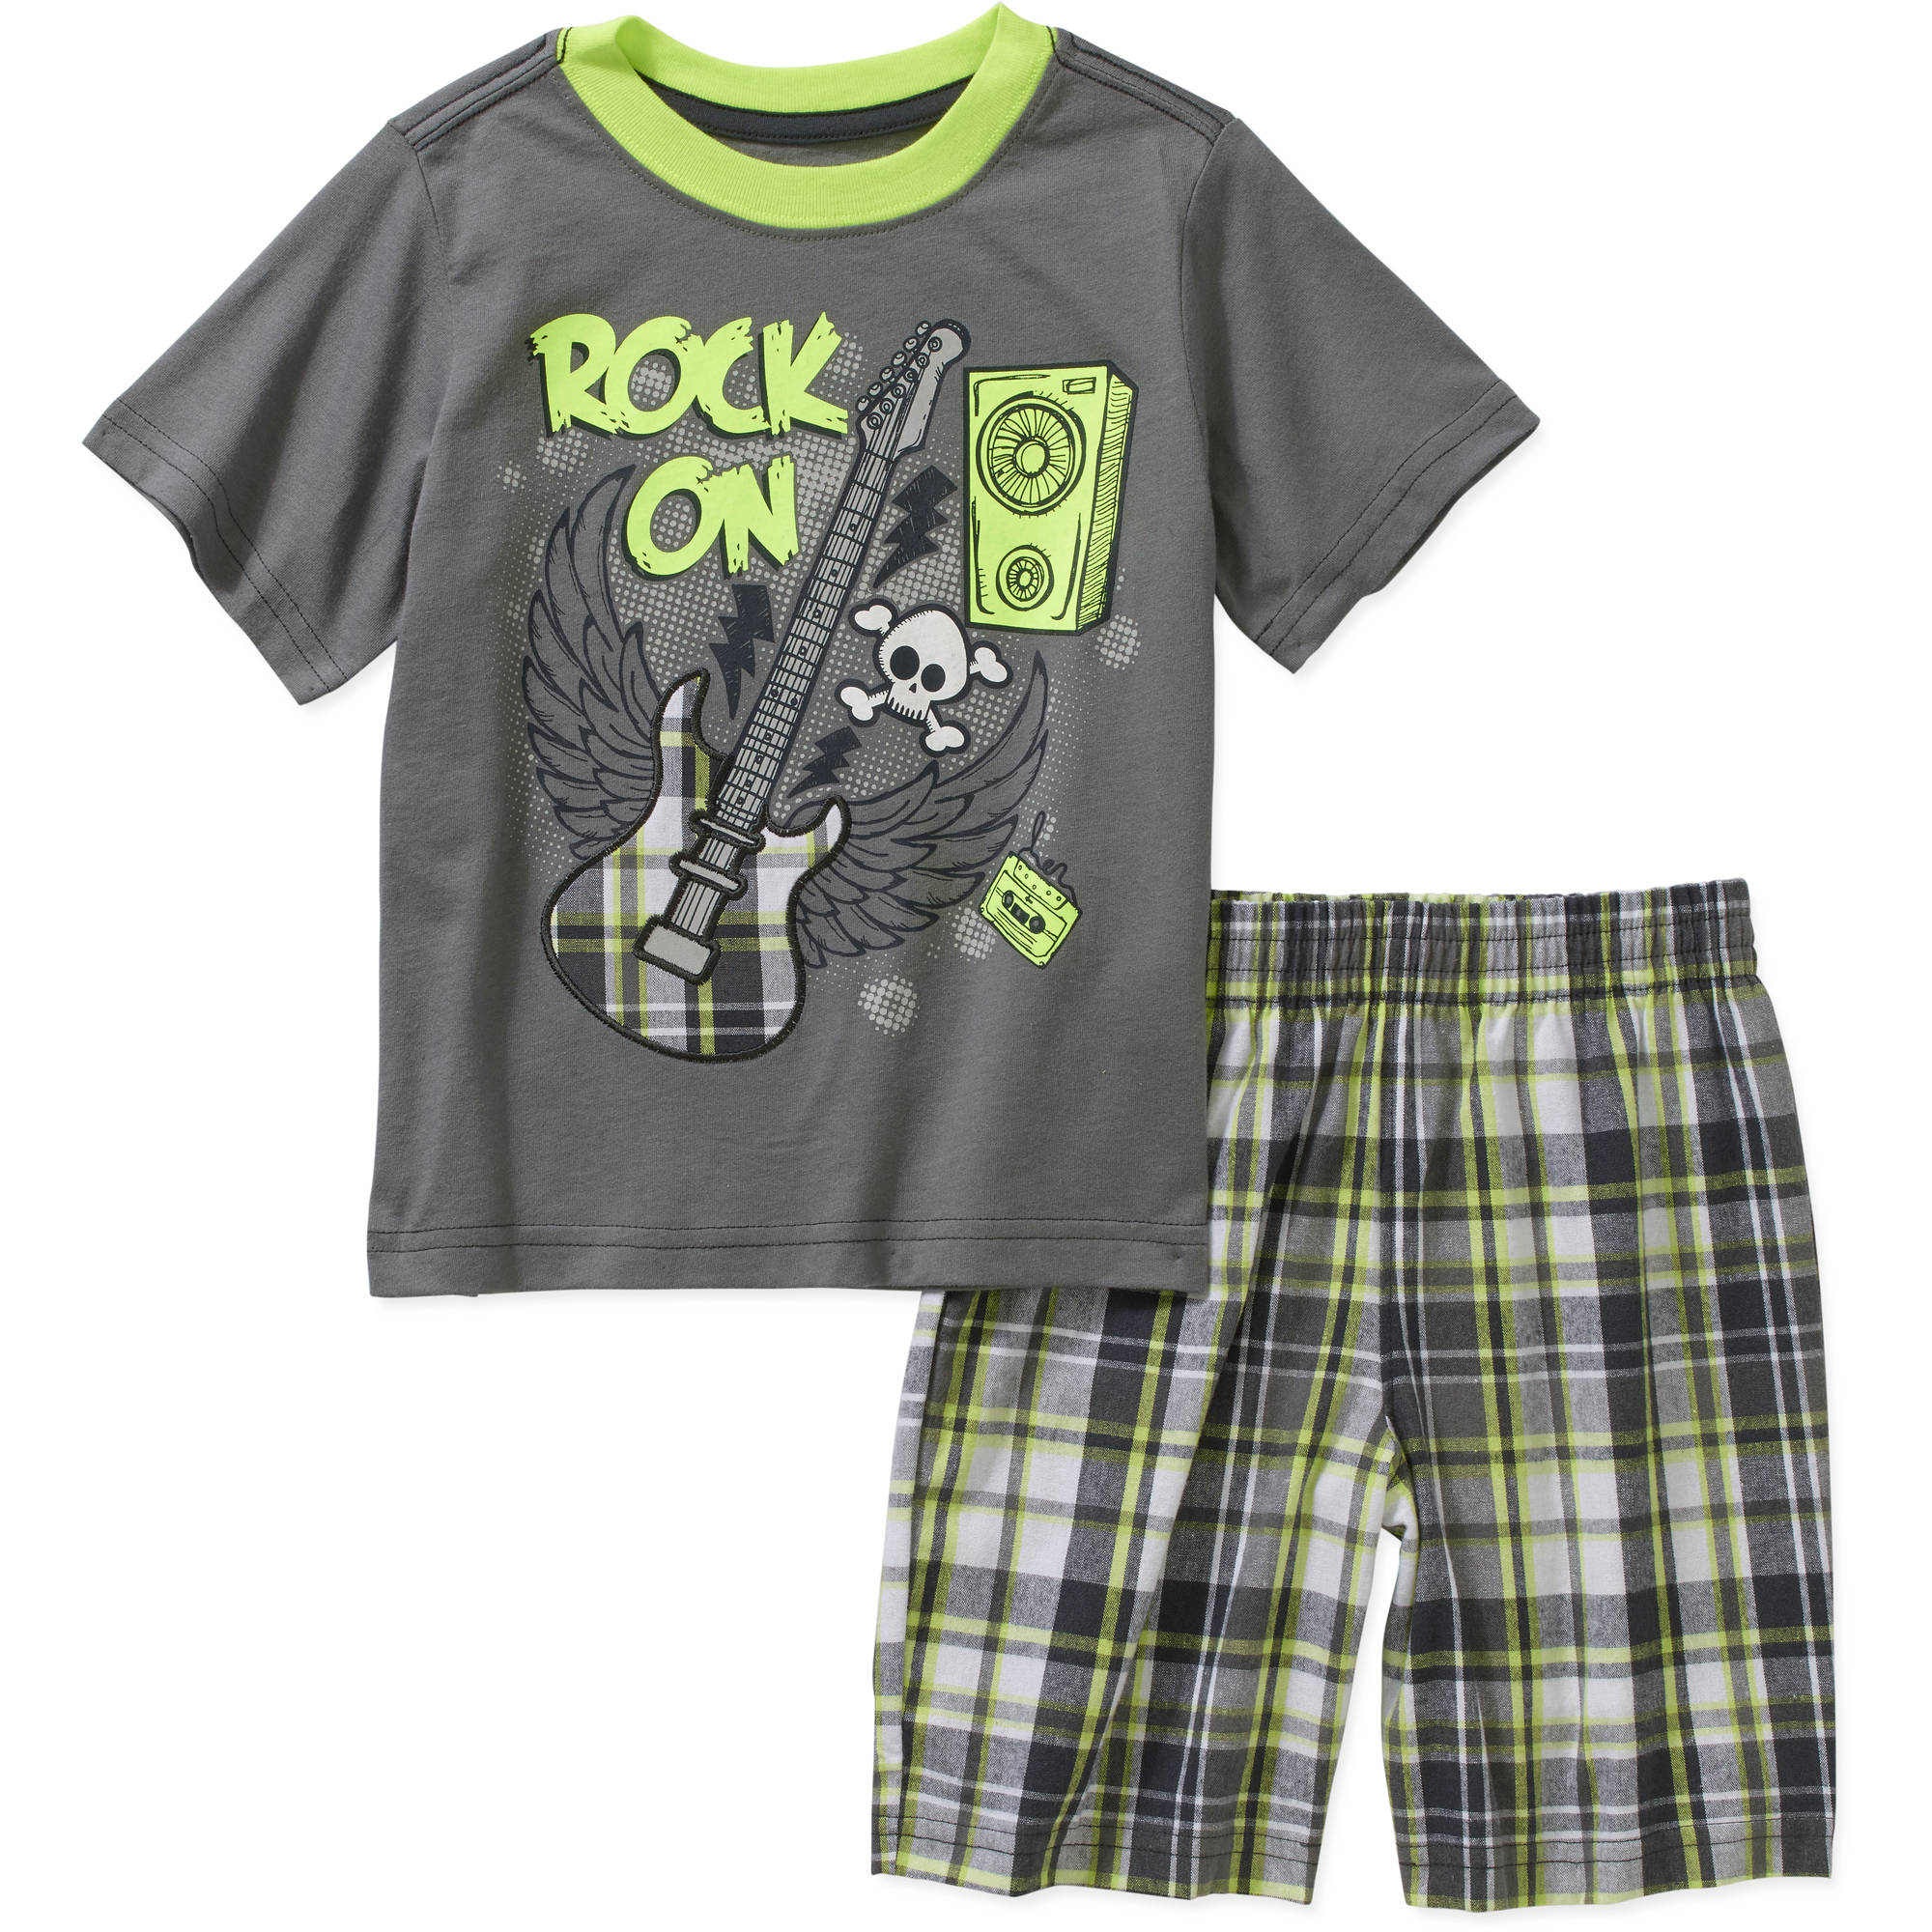 Healthtex Toddler Boy Graphic Tee and Shorts Outfit Set